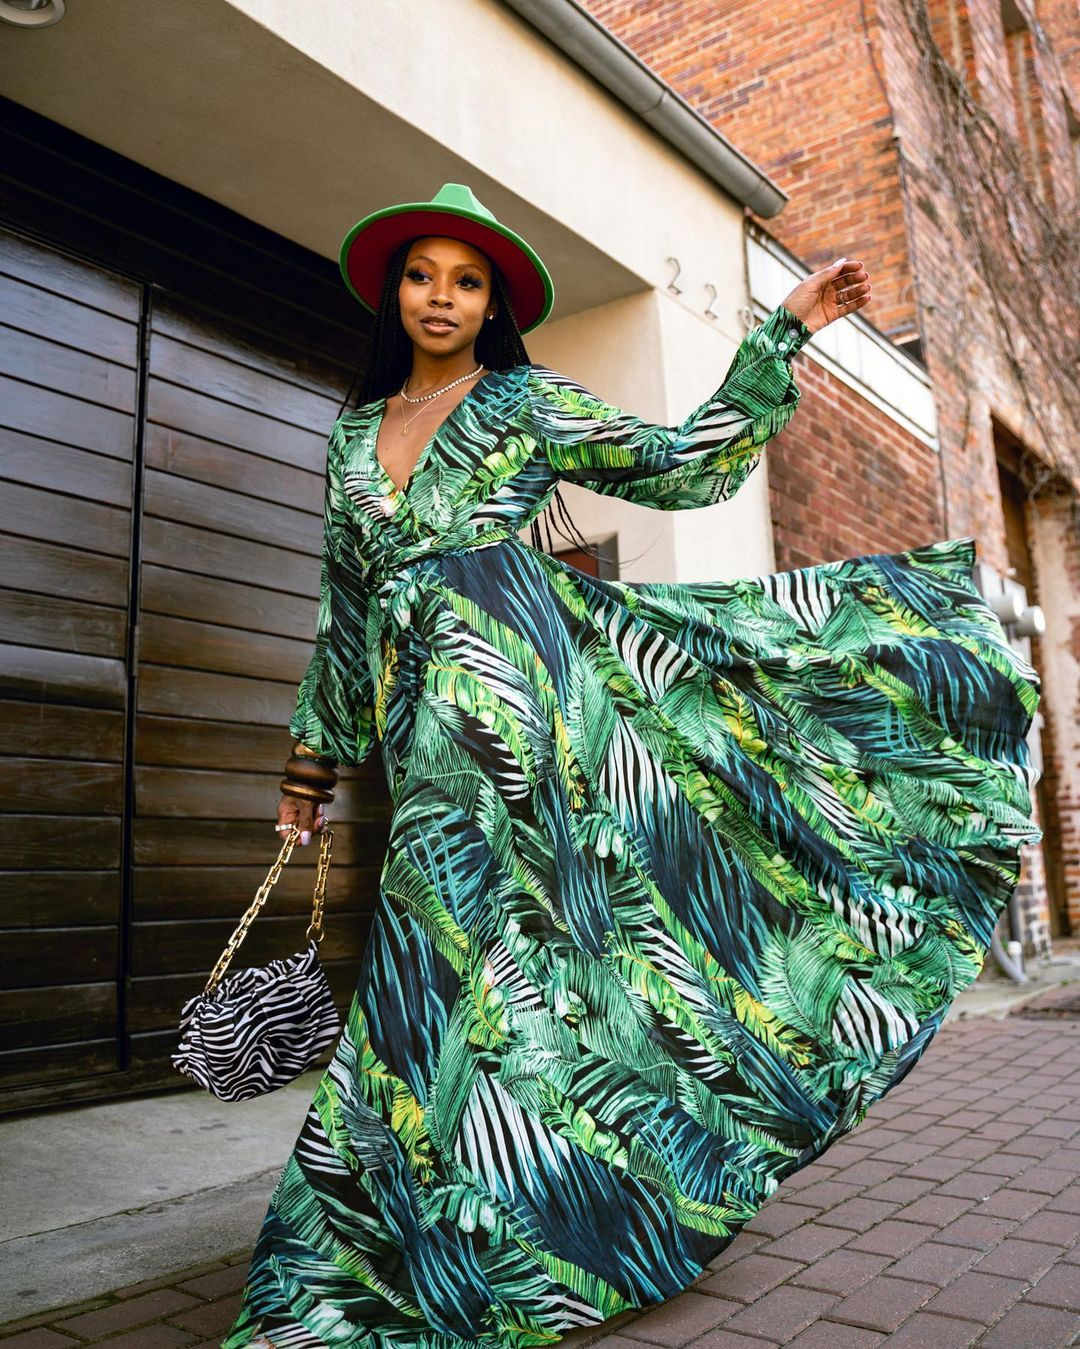 How To Style Green Outfits: Chic Looks + Styling Tips | STYLE RAVE